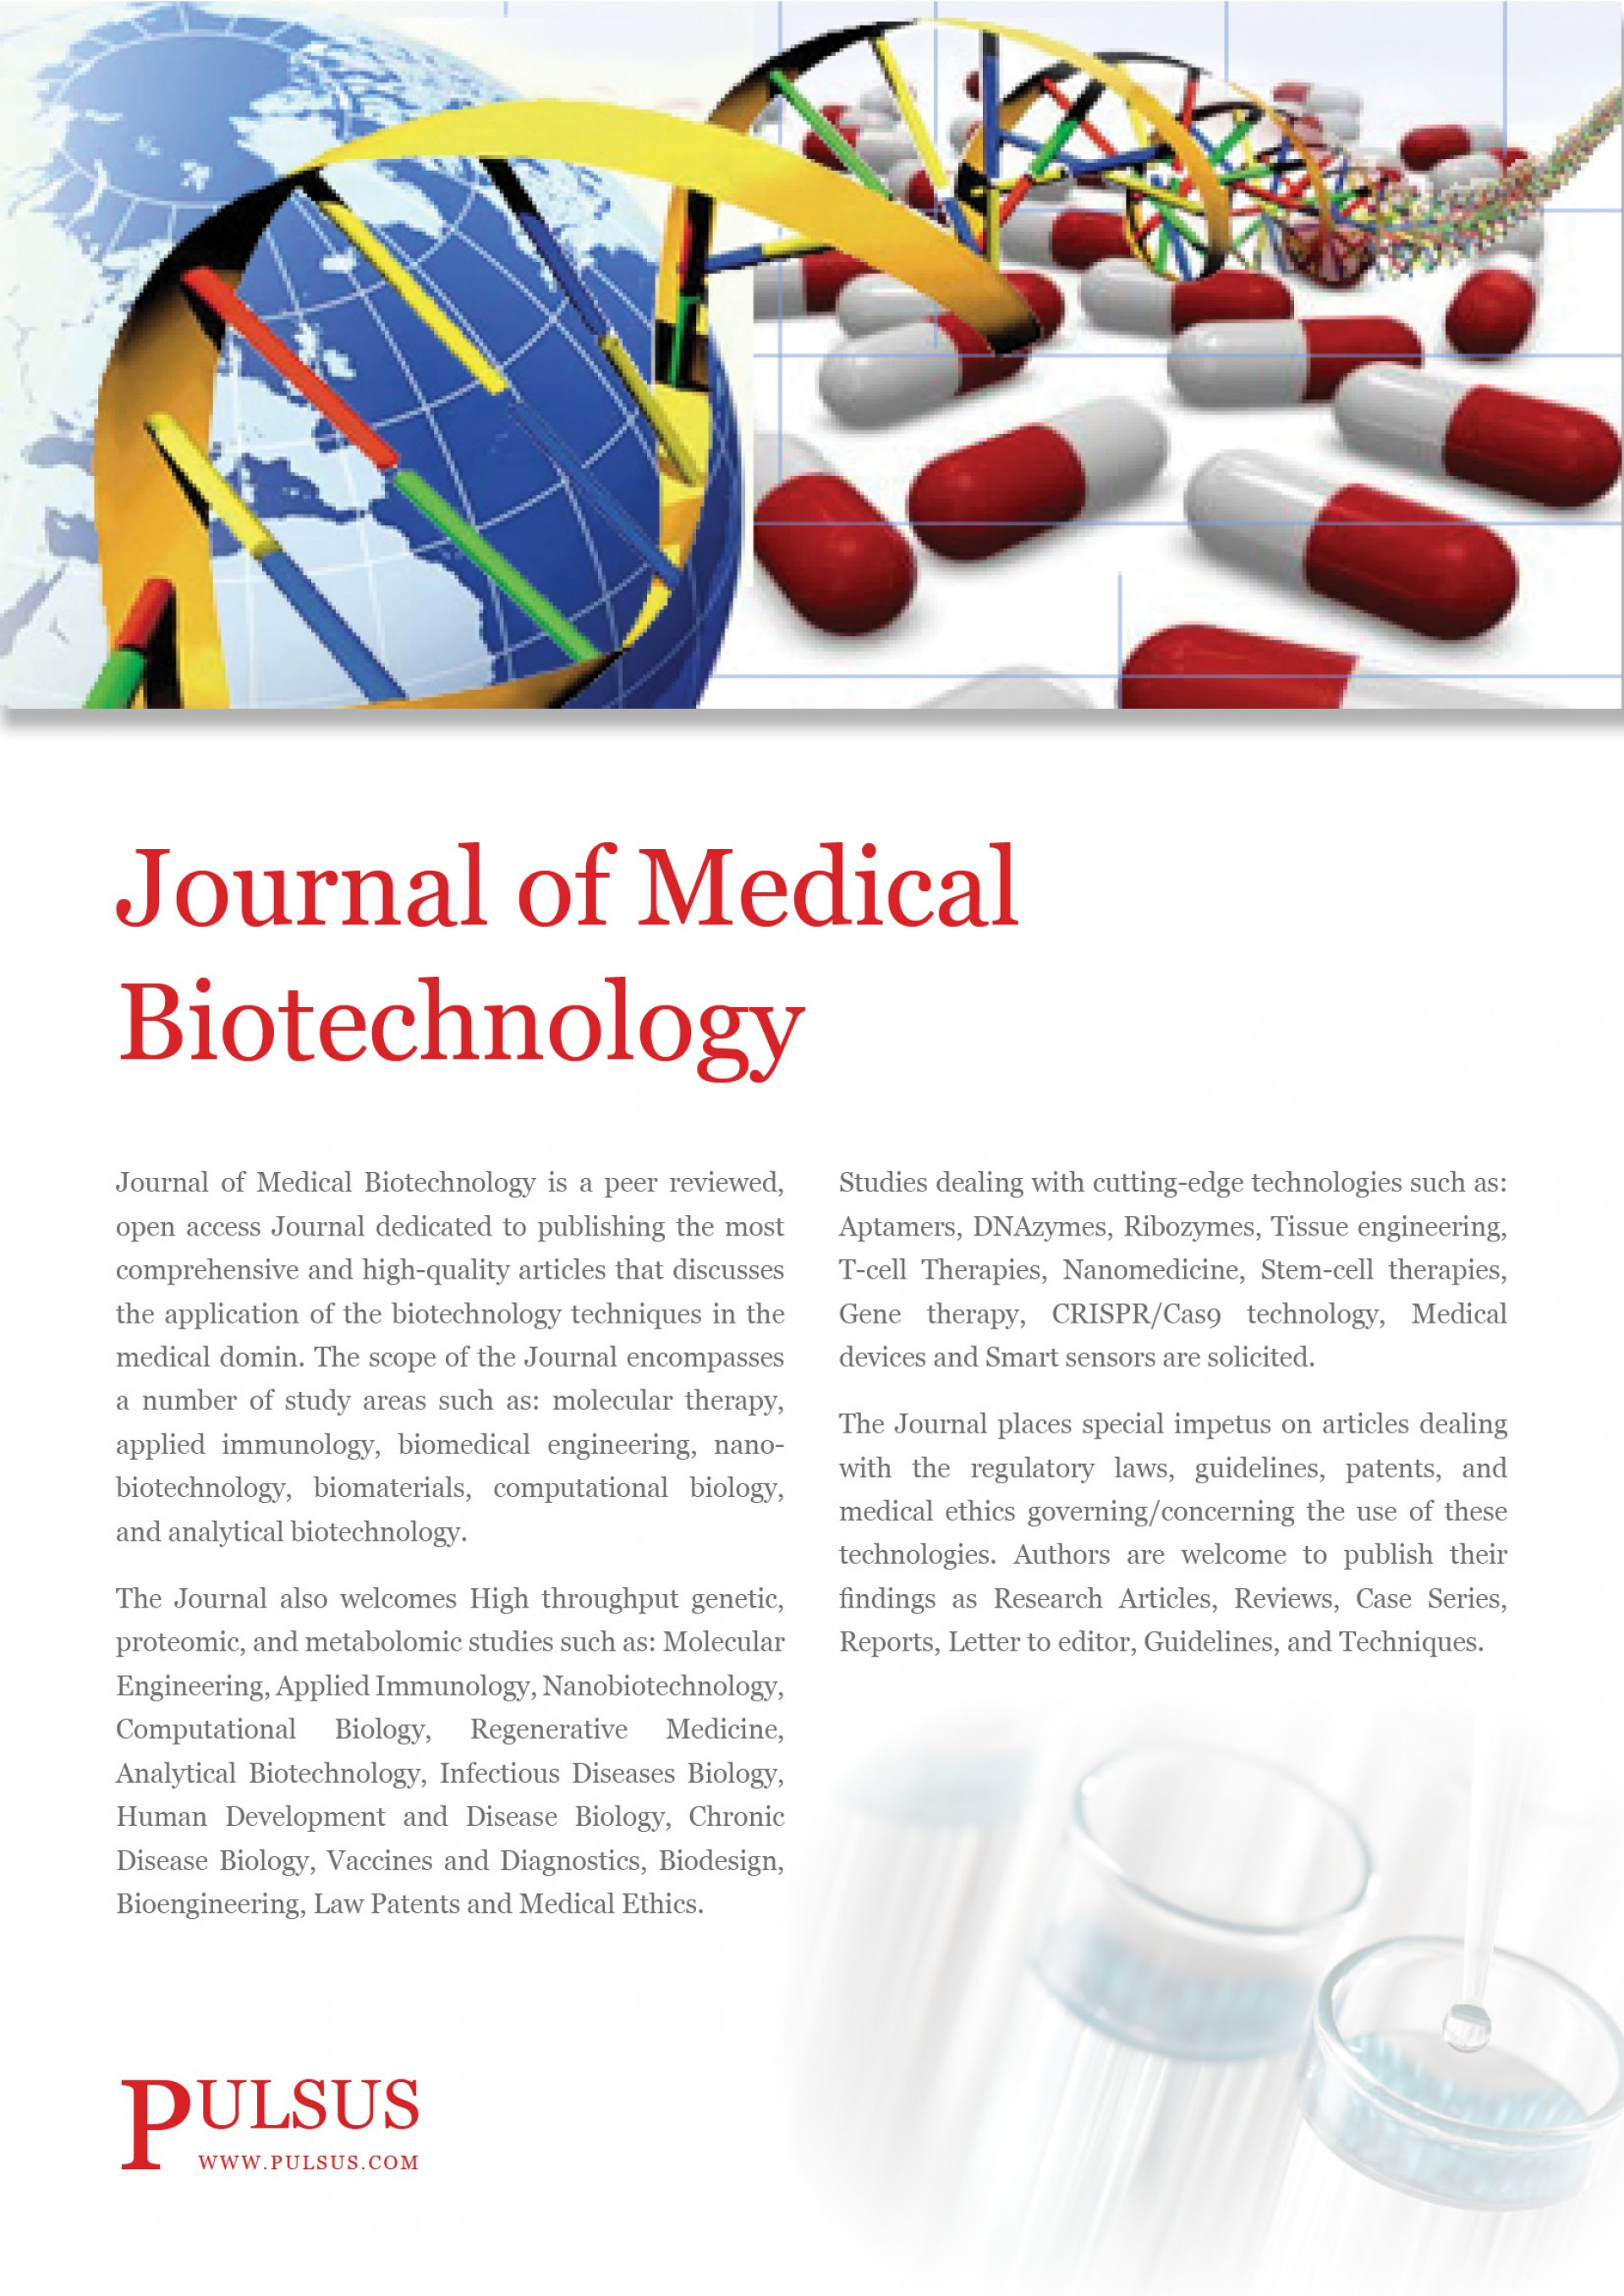 019 Journal Of Medical Biotechnology Flyer Research Paper Papers Pdf Free Impressive Download 1920